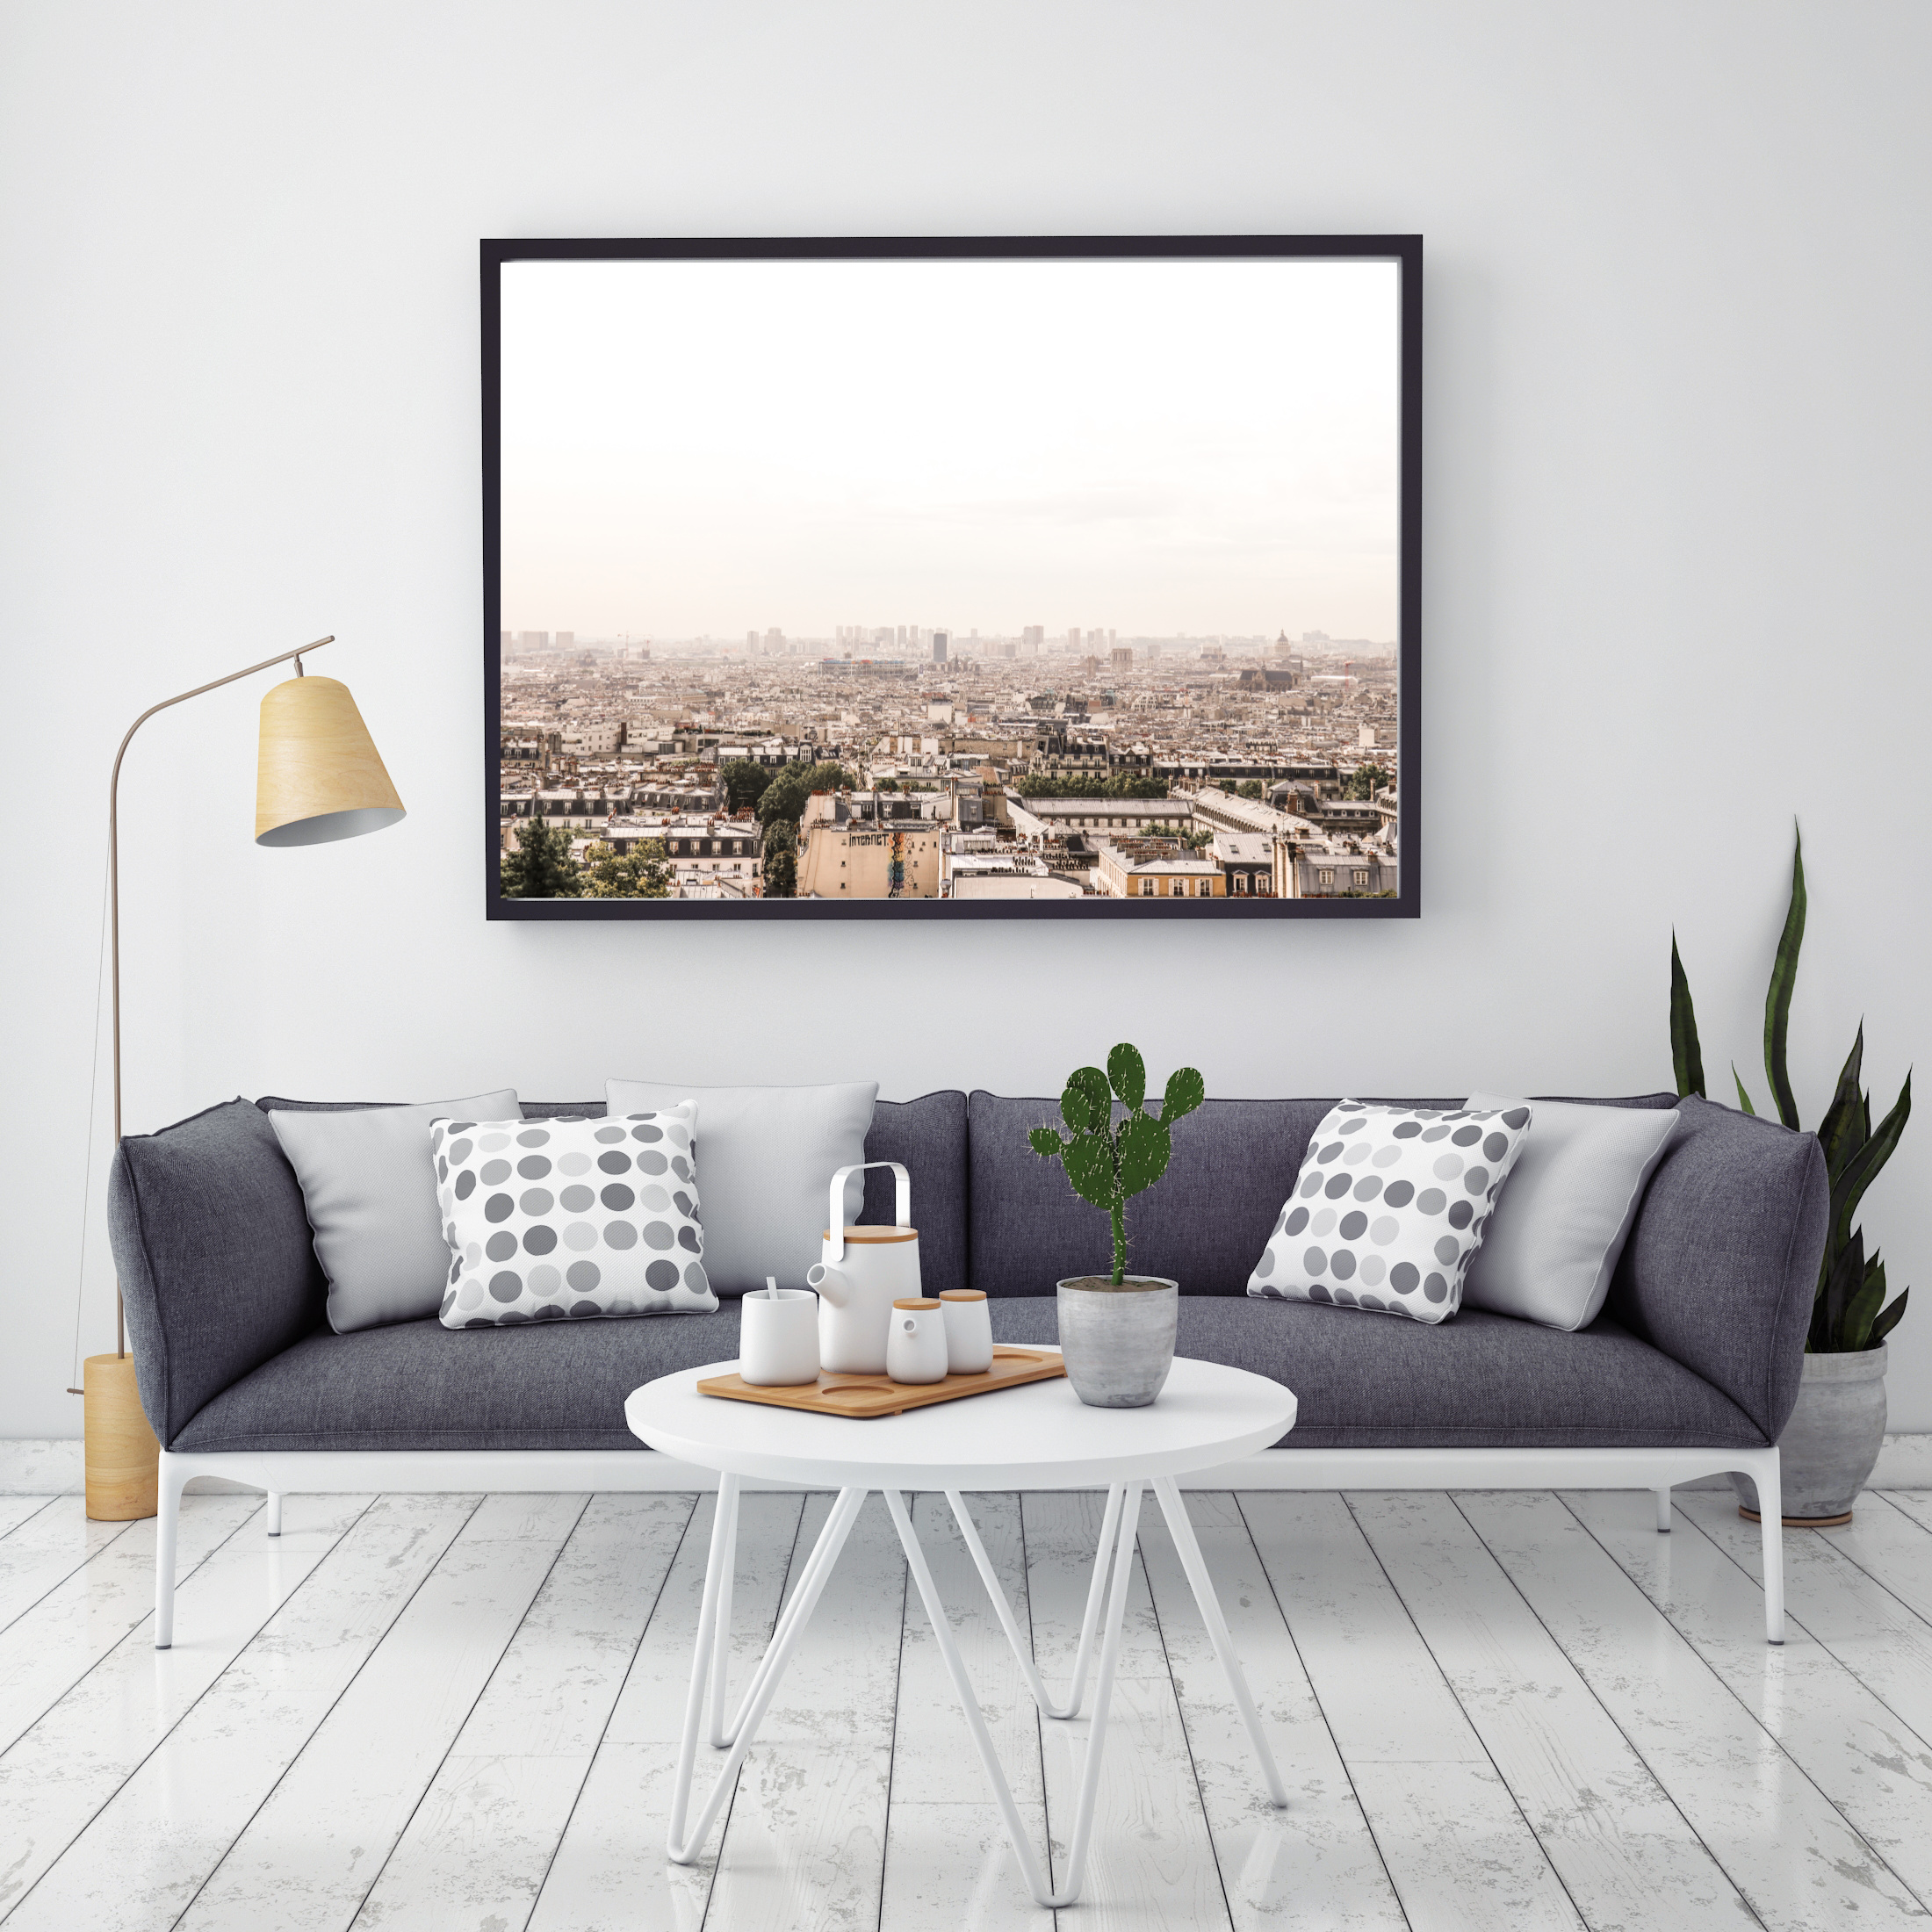 paris skyline landscape wall print